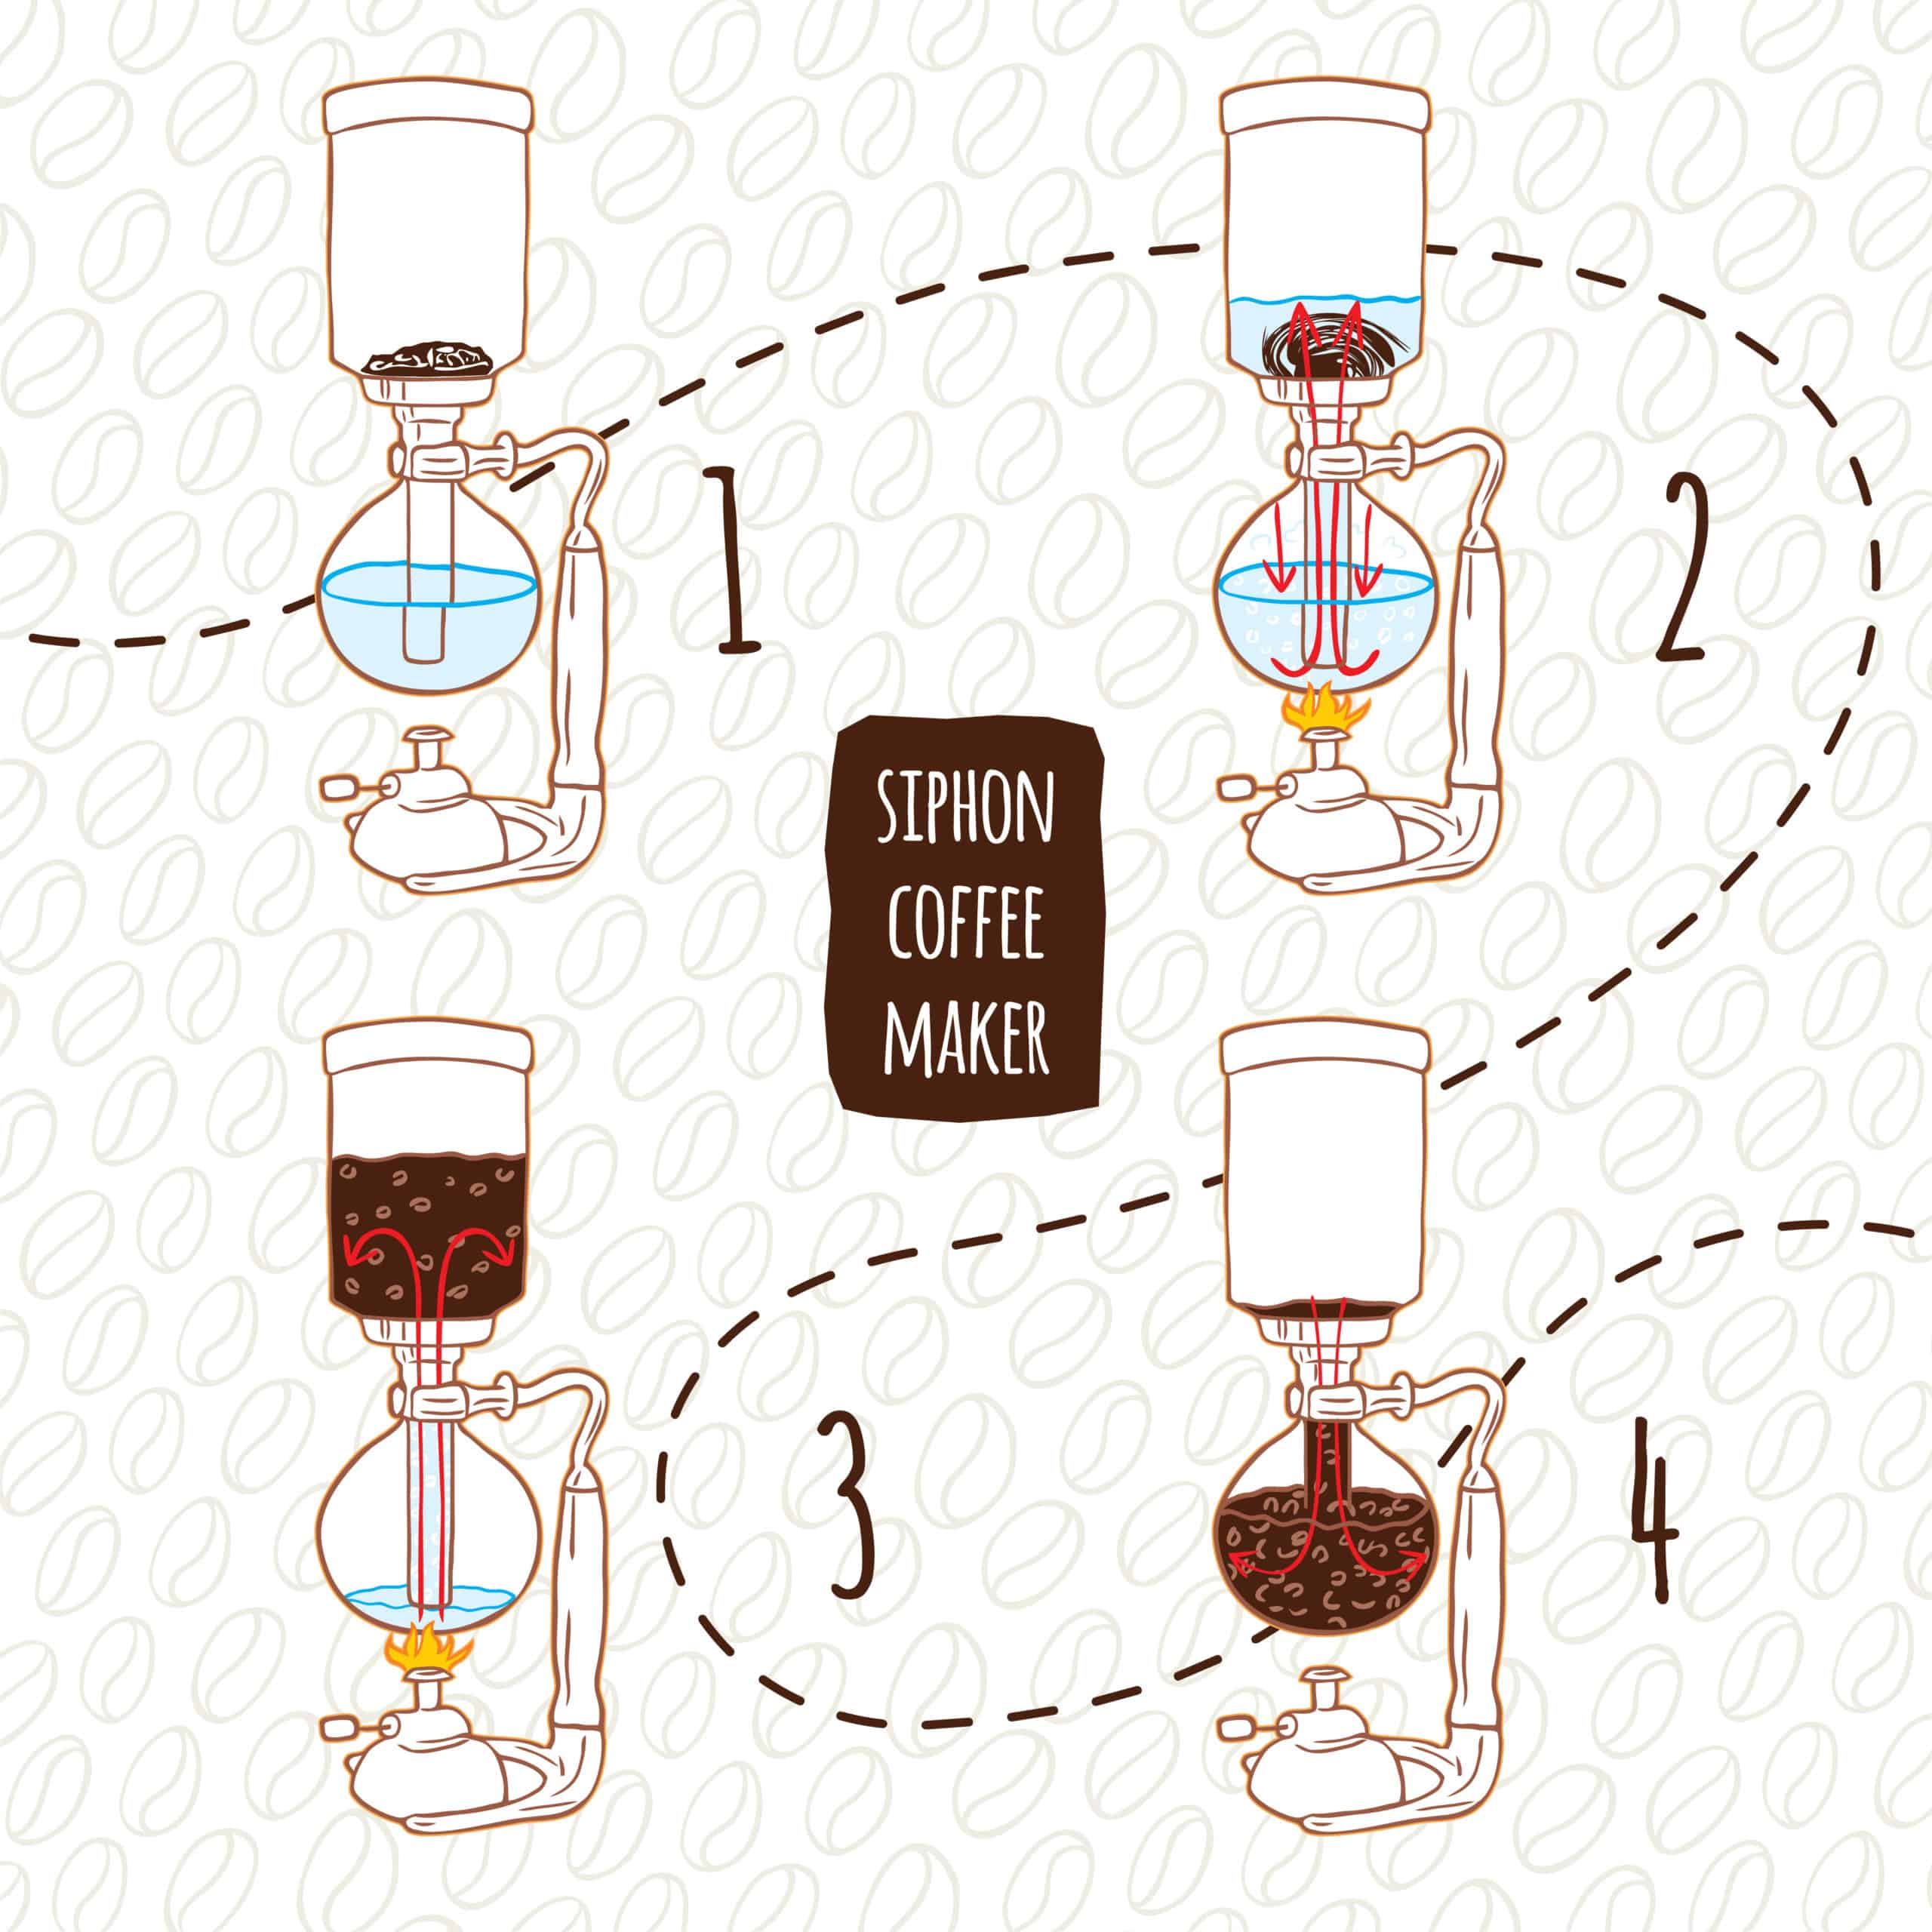 How siphon coffee maker Work